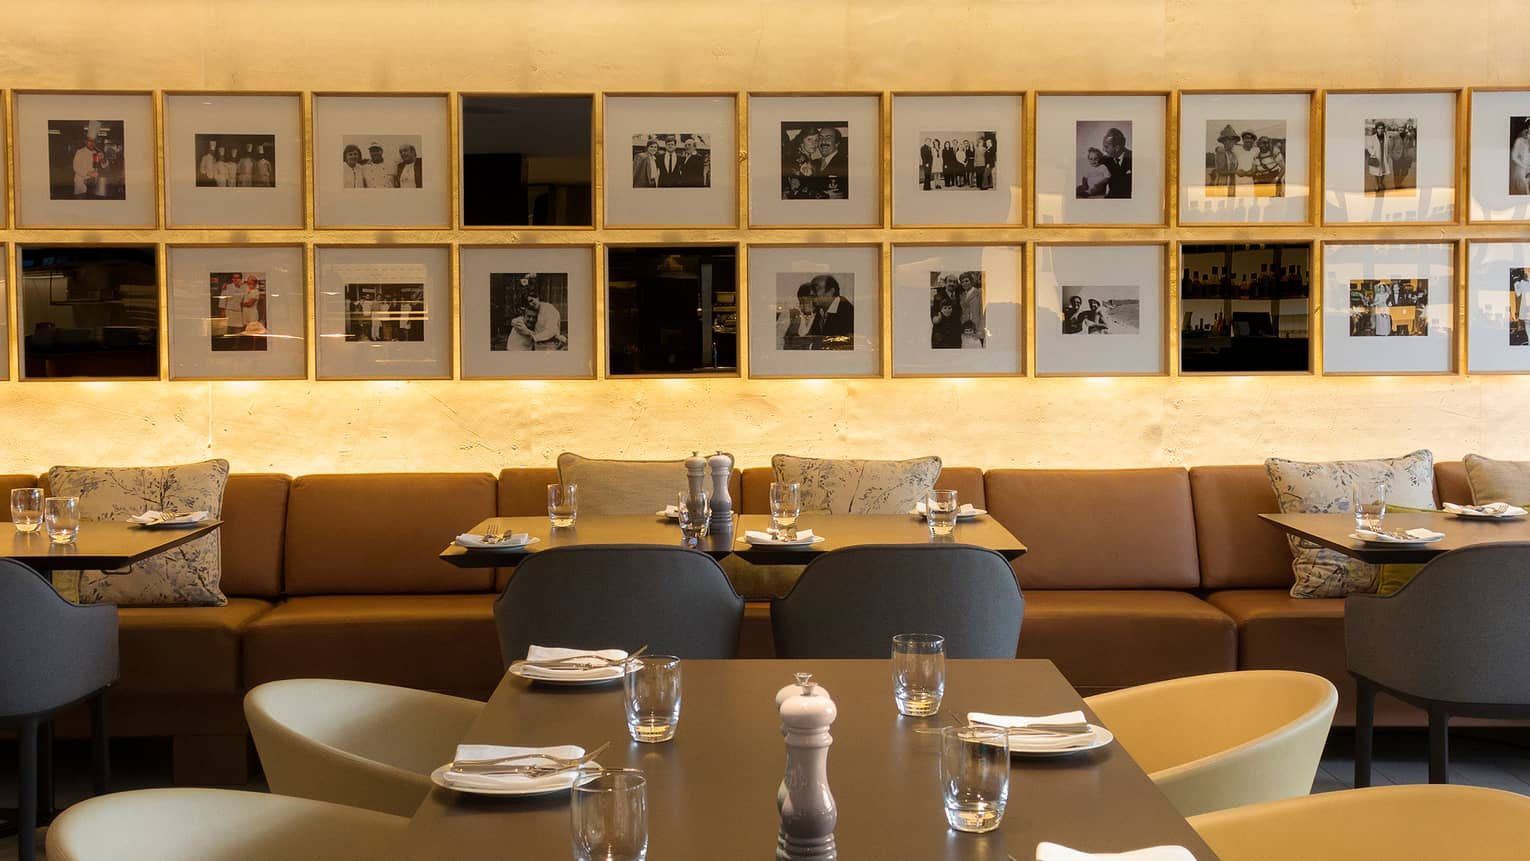 Nemo restaurant dining tables with brown banquette, bucket chairs, black-and-white framed photos arranged on wall